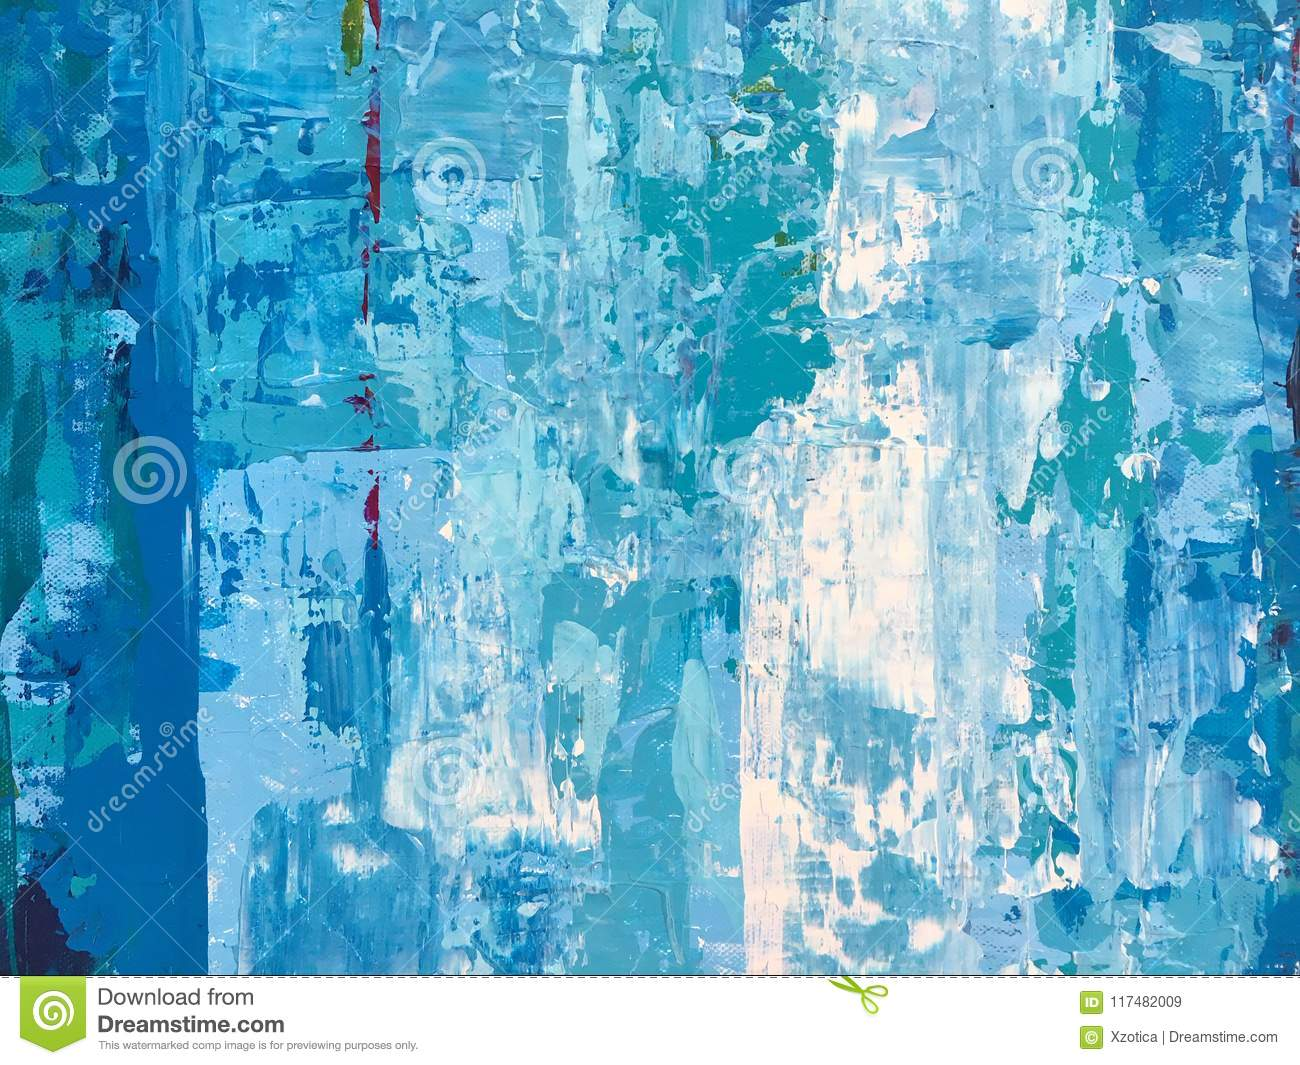 The Rough And Grunge Blue And White Abstract Wallpaper